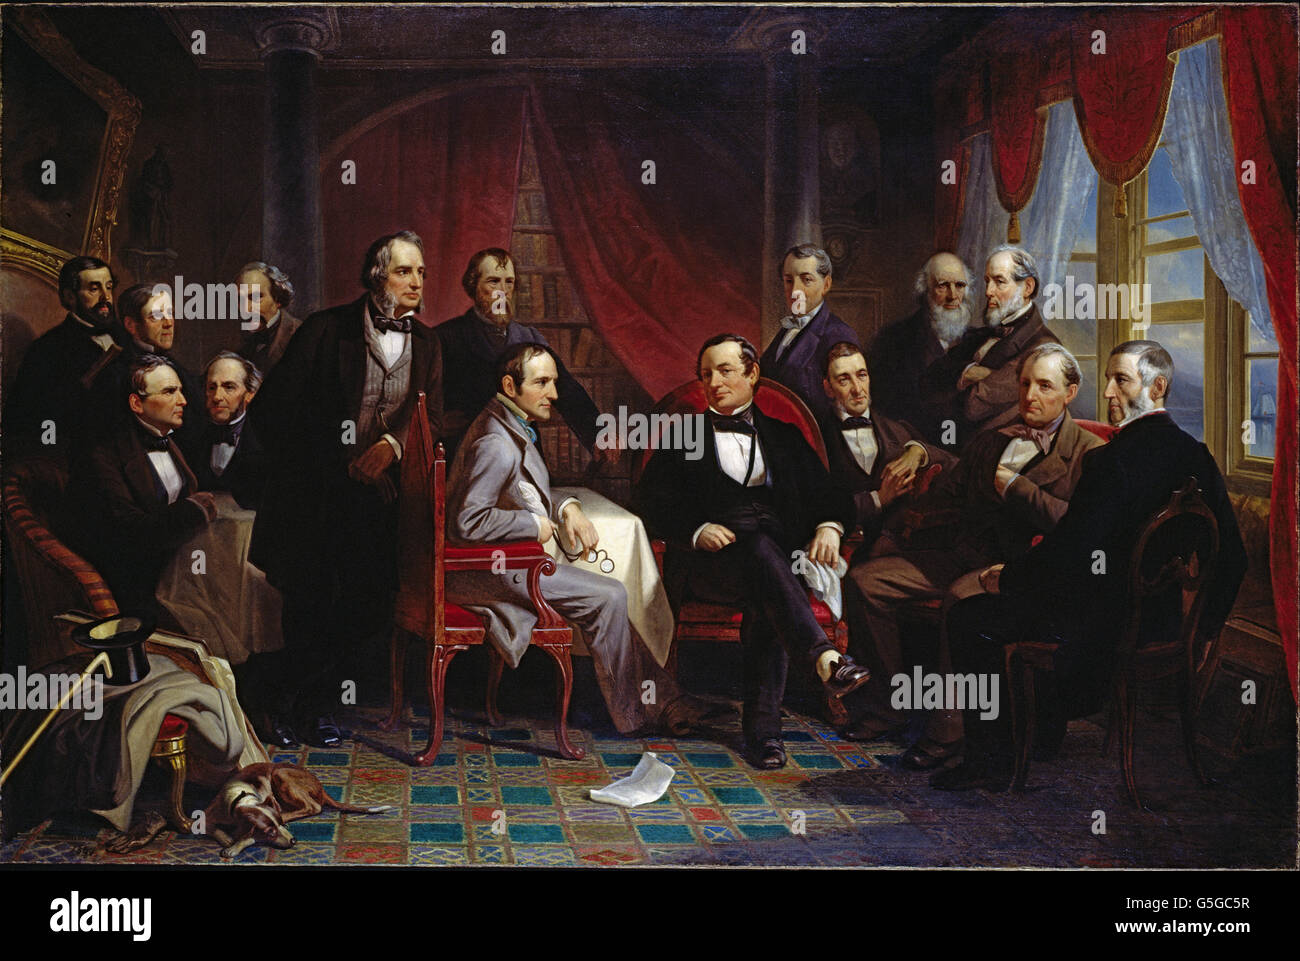 Christian Schussele - Washington Irving and his Literary Friends at Sunnyside - Stock Image